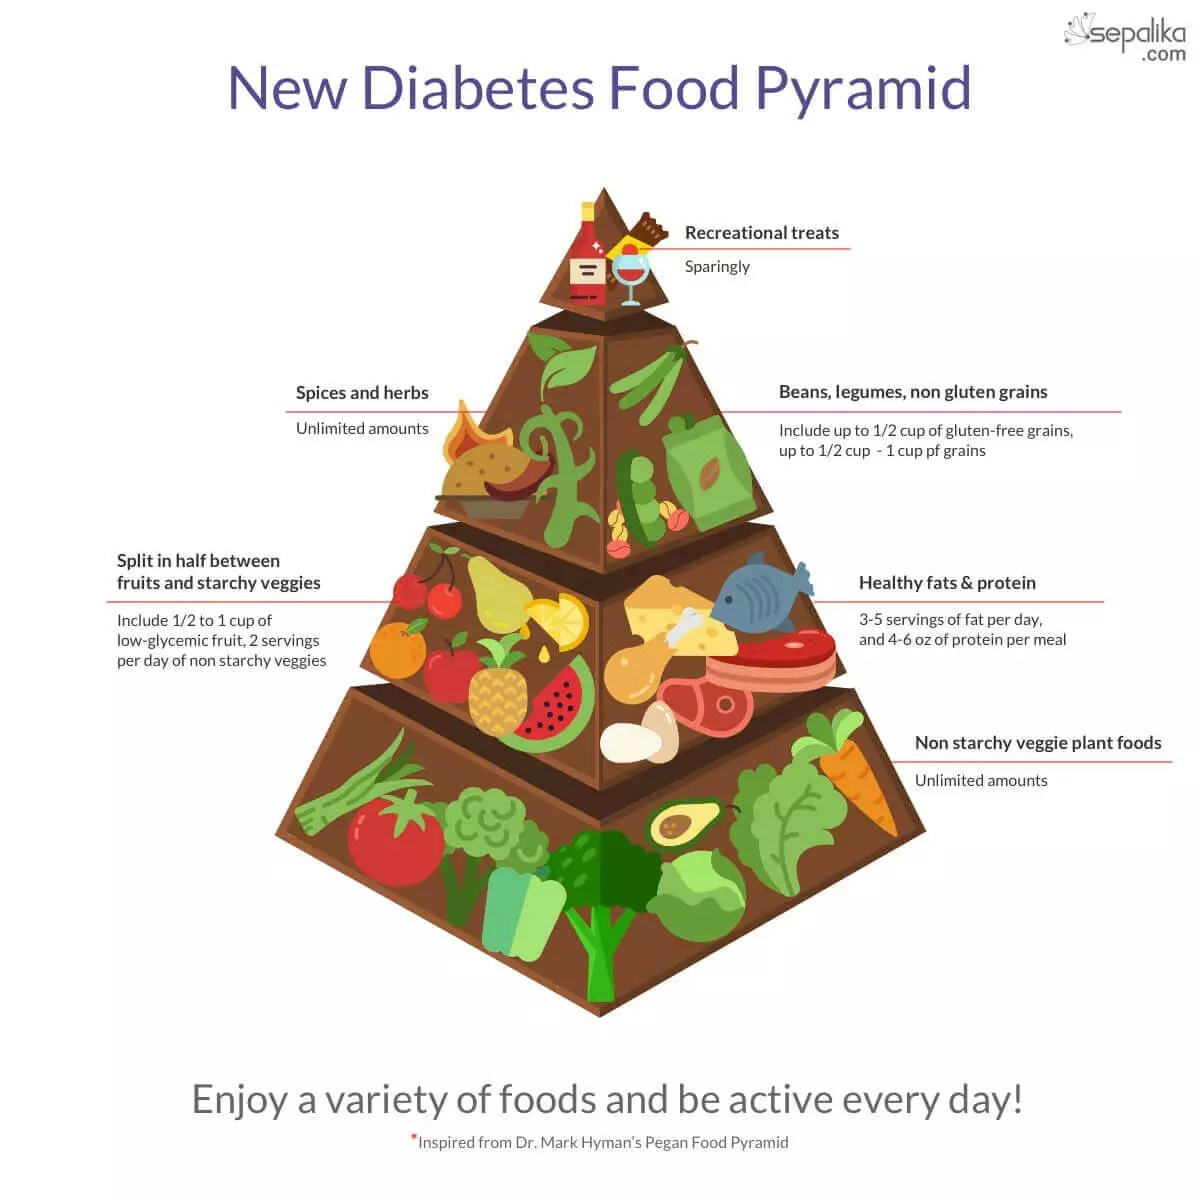 new food pyramid diagram yamaha outboard wiring diabetes traditional diet vs lchf